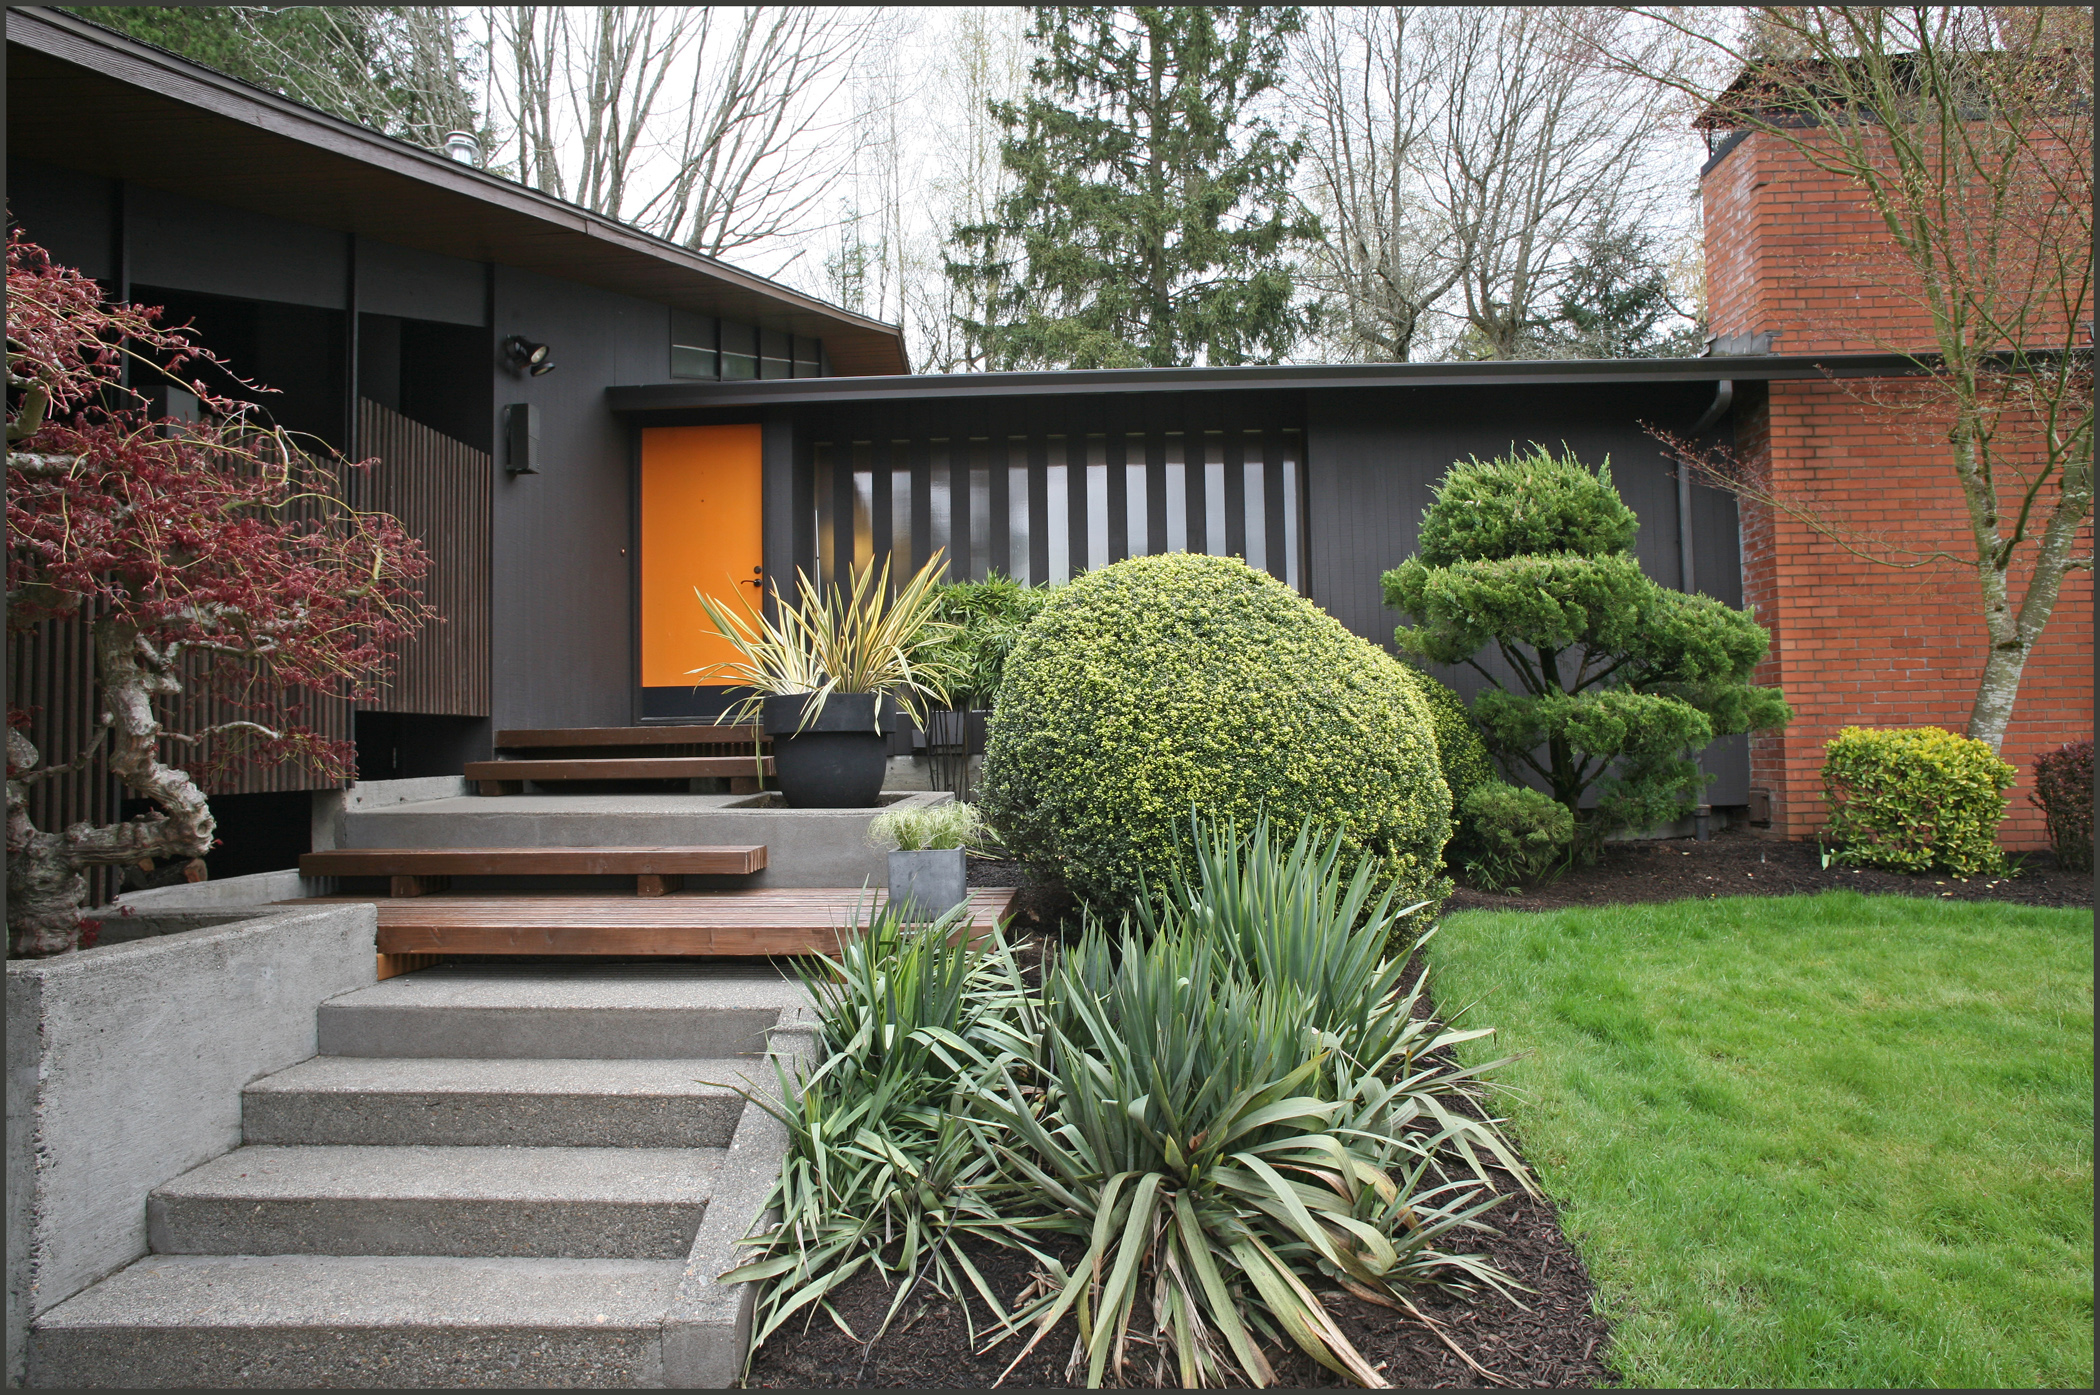 Mid century modern home exterior paint colors - Home modern